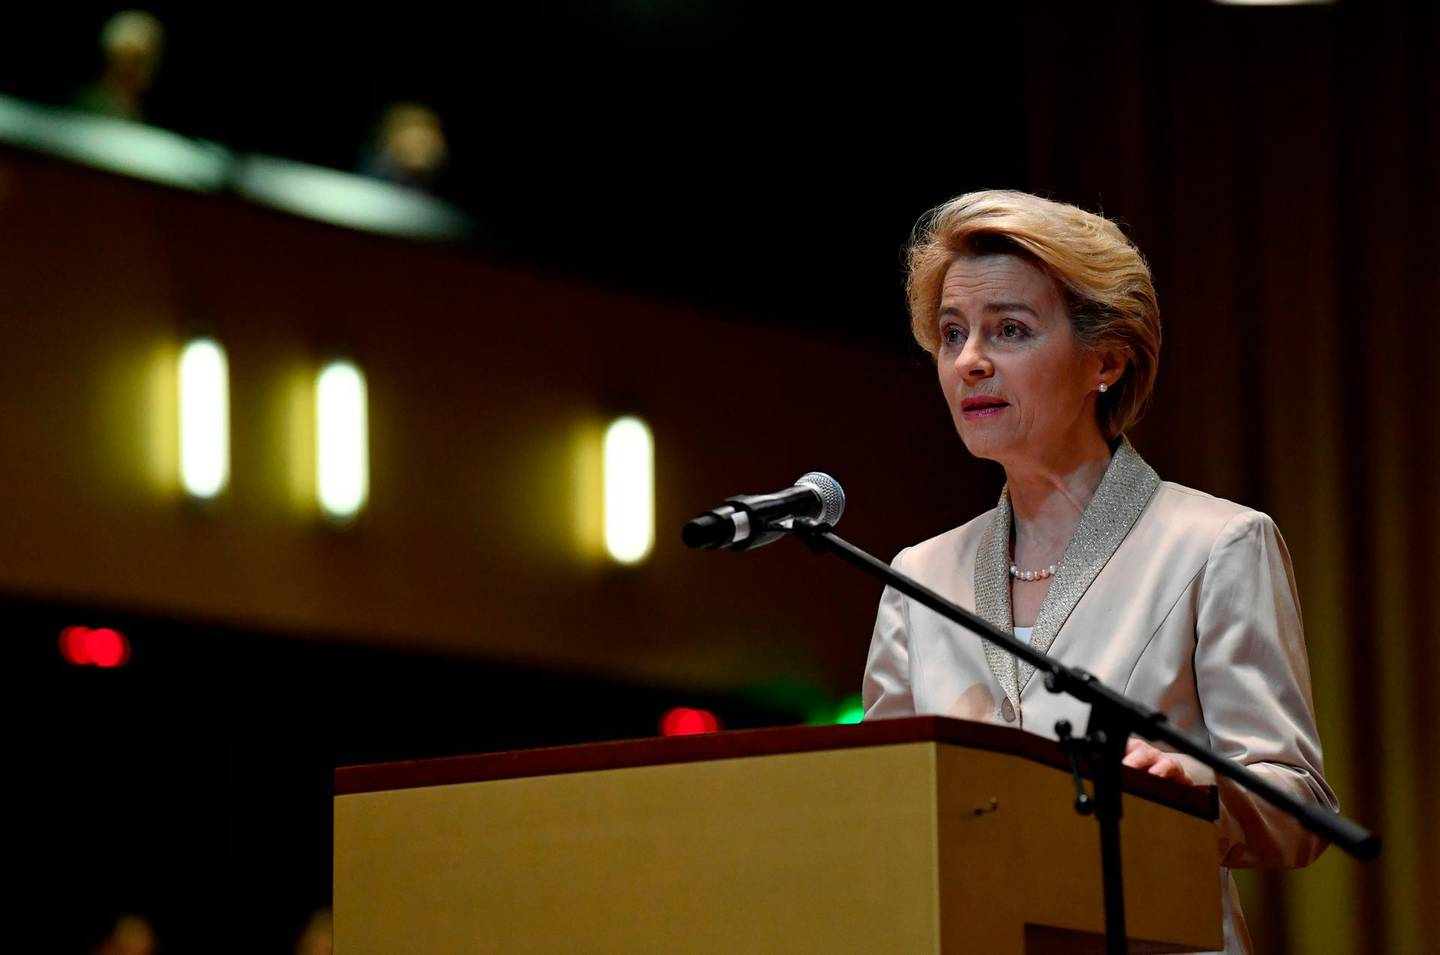 European Commission President Ursula von der Leyen takes the oath of office, on January 13, 2020, at the Court of Justice of the European Union in Luxembourg. / AFP / JOHN THYS